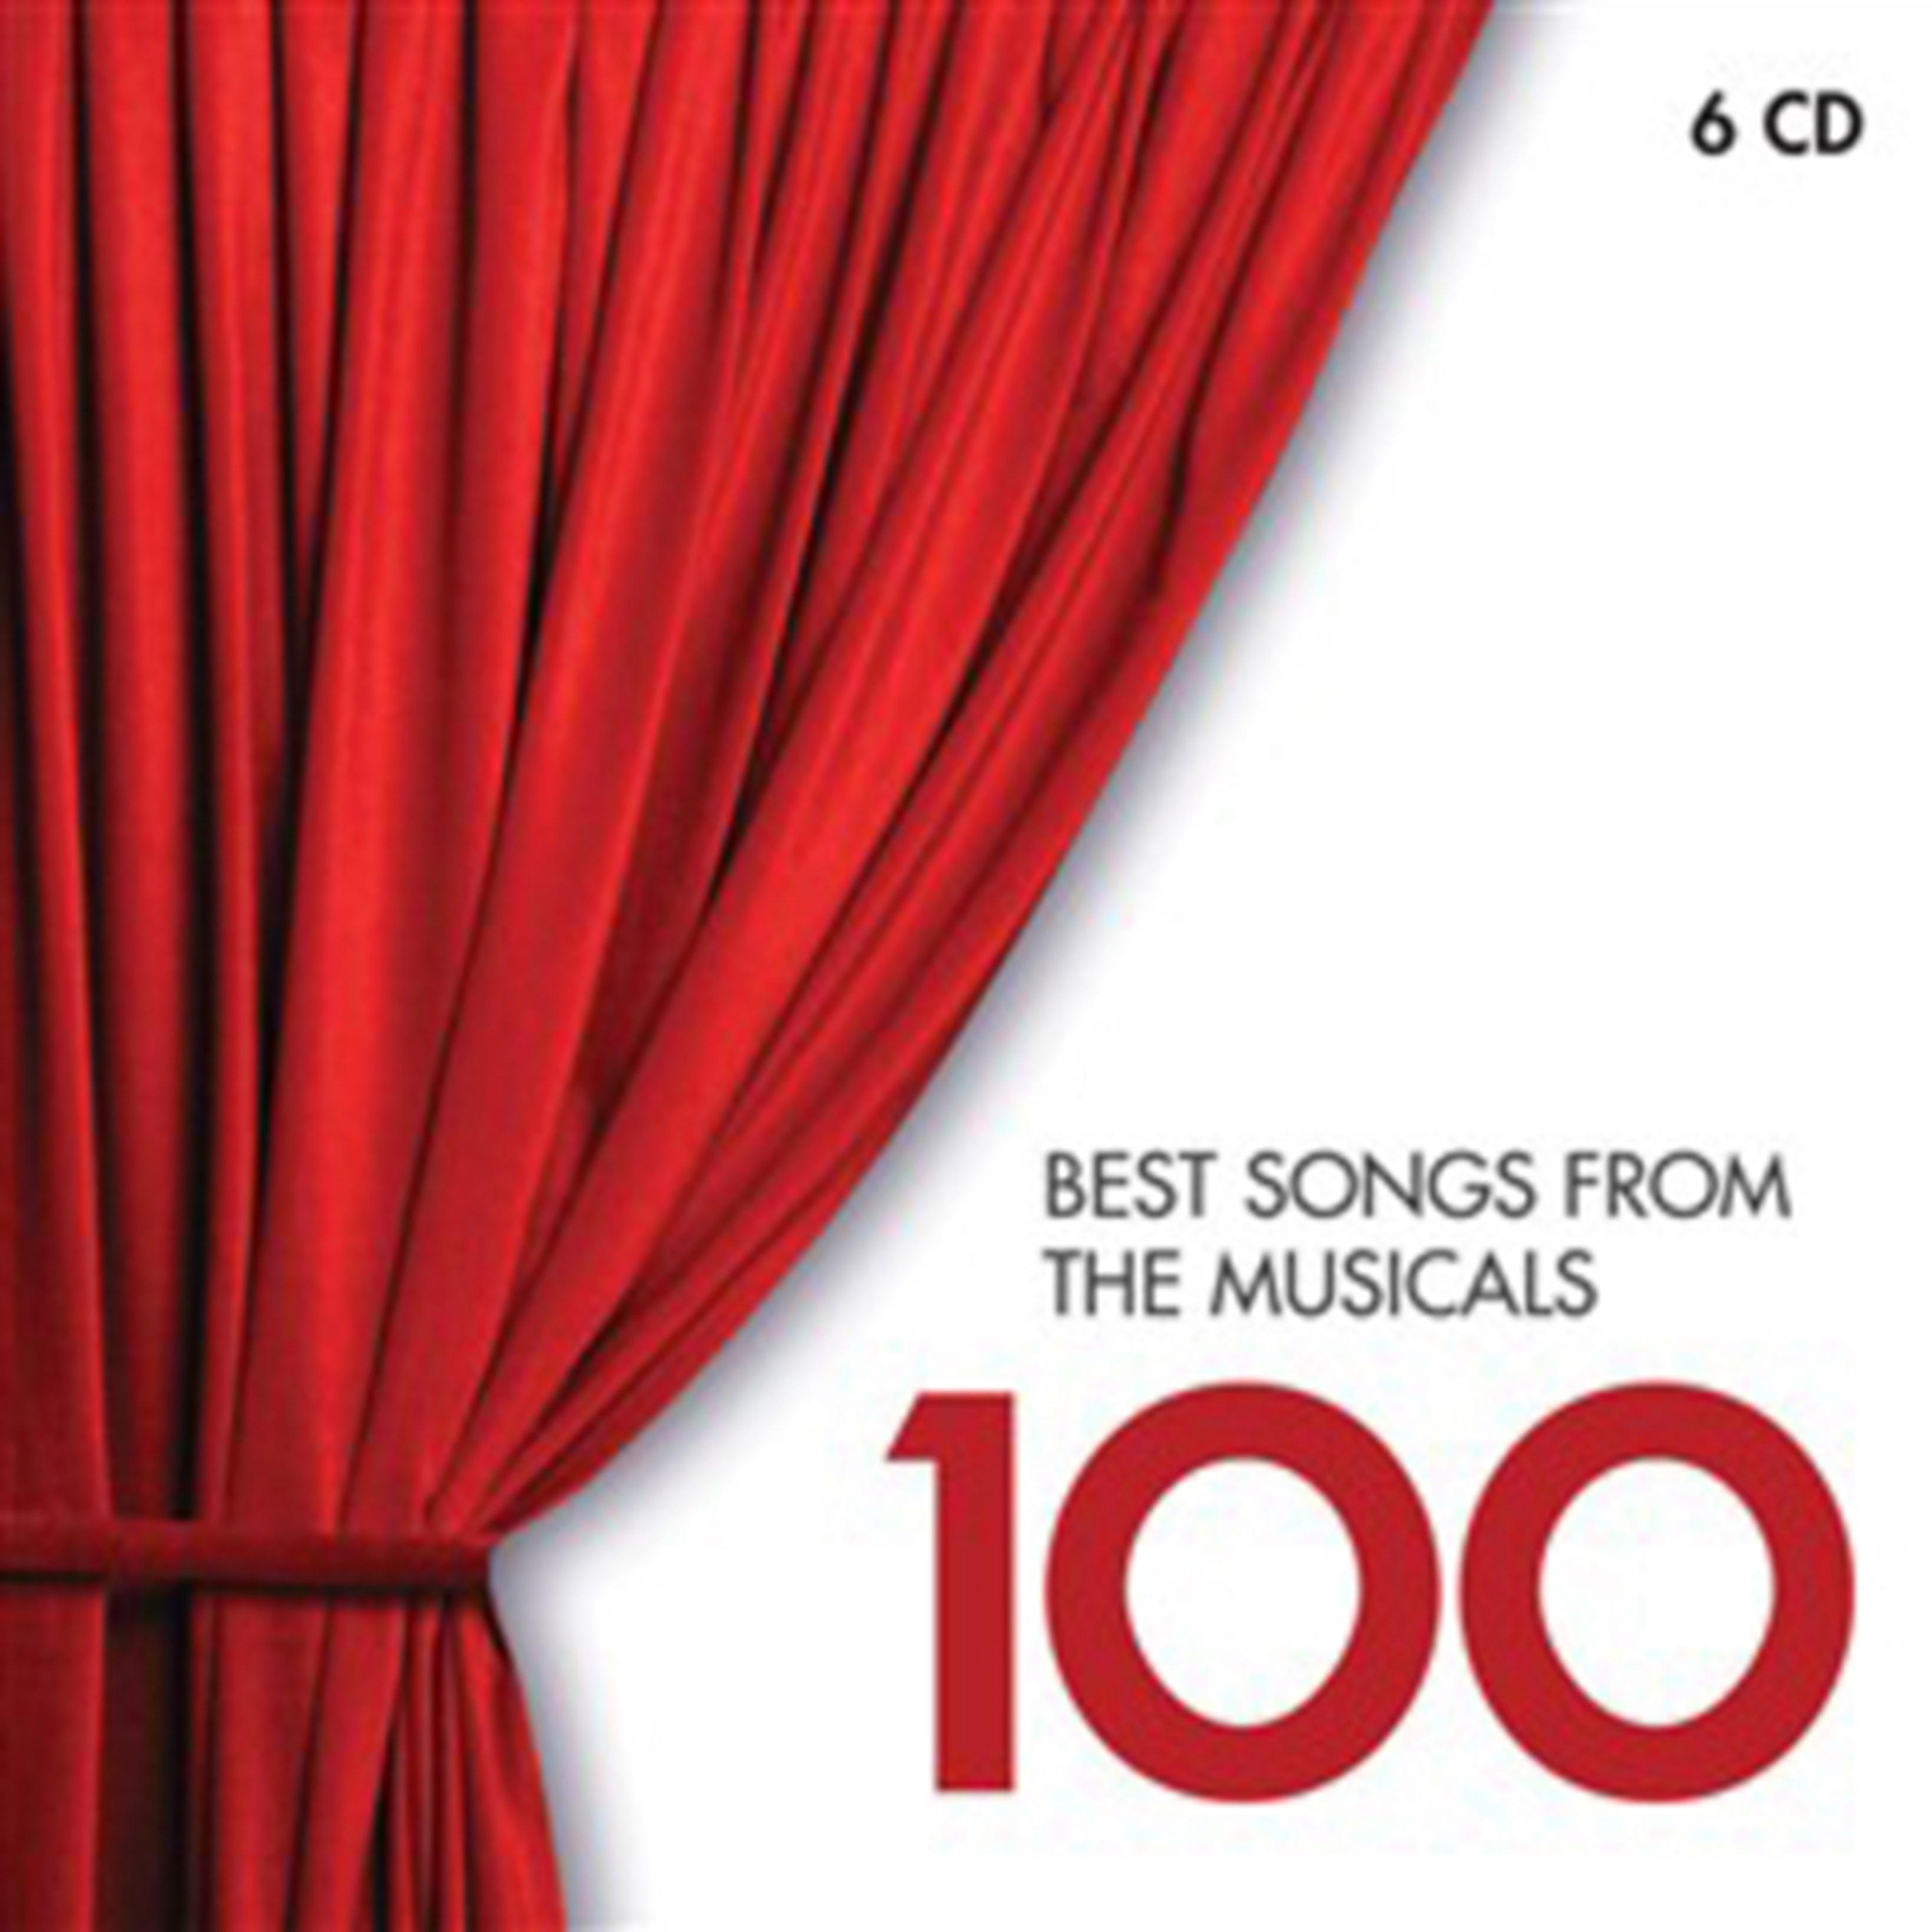 100 Best Songs from the Musicals - 1